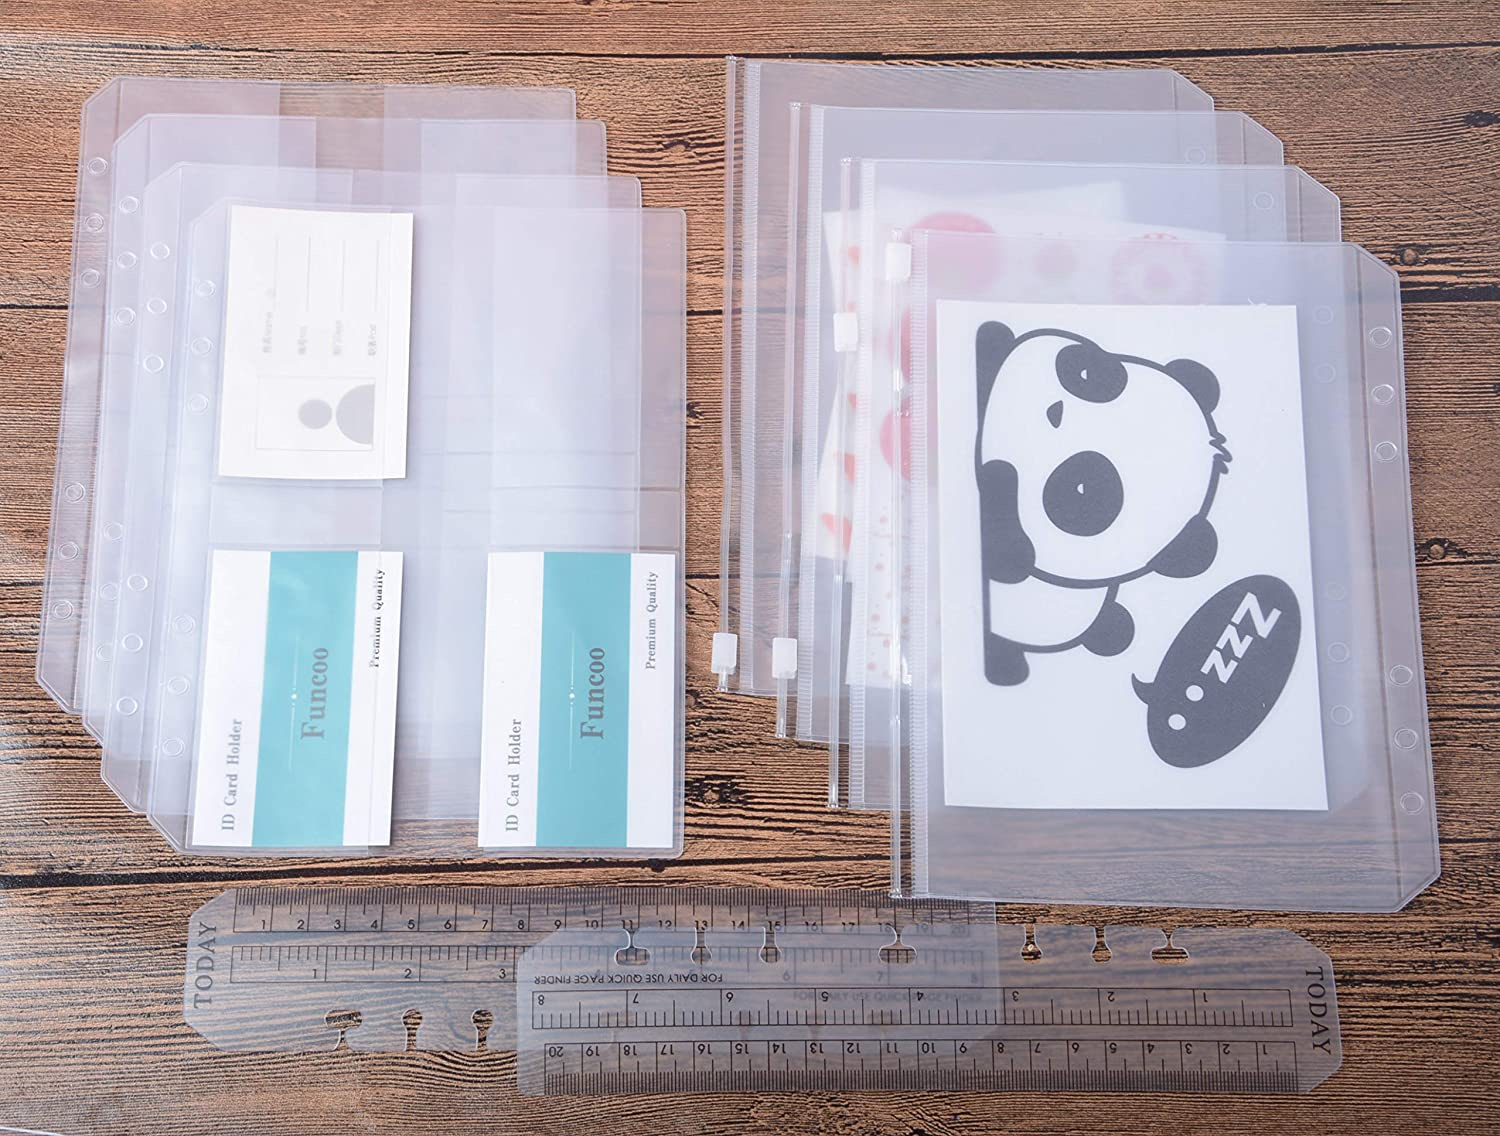 A5 Funcoo 6-Ring Binder Plastic Zipper Pockets//Bill Pouch//Name Card Bag Set of 8 Binder Planner Notebook Refills Inserts 2 Plastic Page Marker Measuring Ruler for 6-Ring Notebook Binder